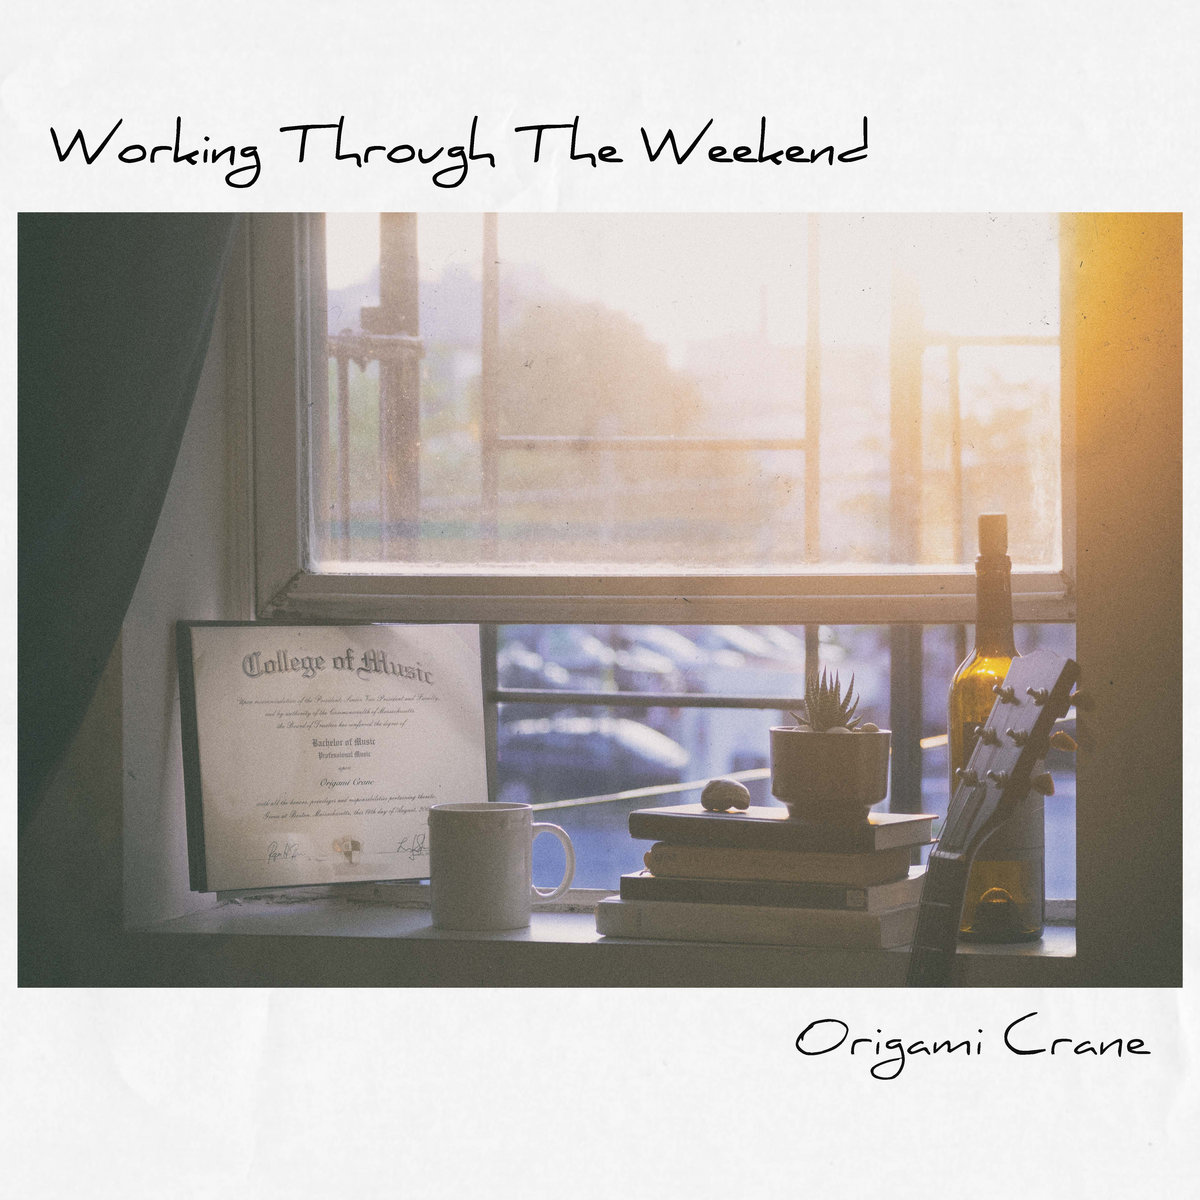 Working Through The Weekend by Origami Crane